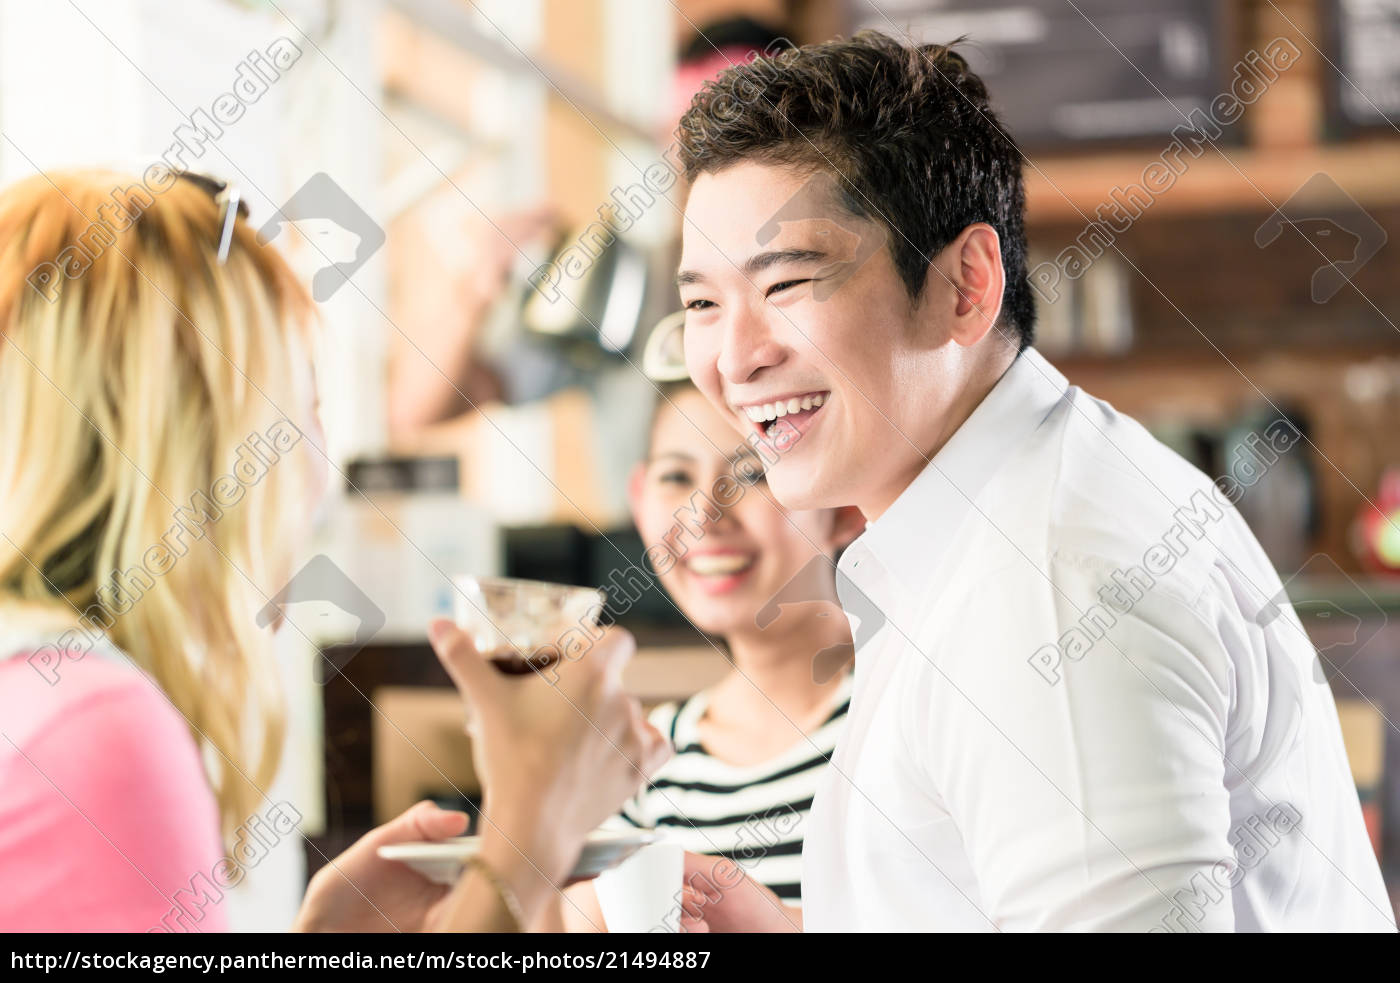 People Having Coffee And Fun In Asian Cafe Stock Photo 21494887 Panthermedia Stock Agency